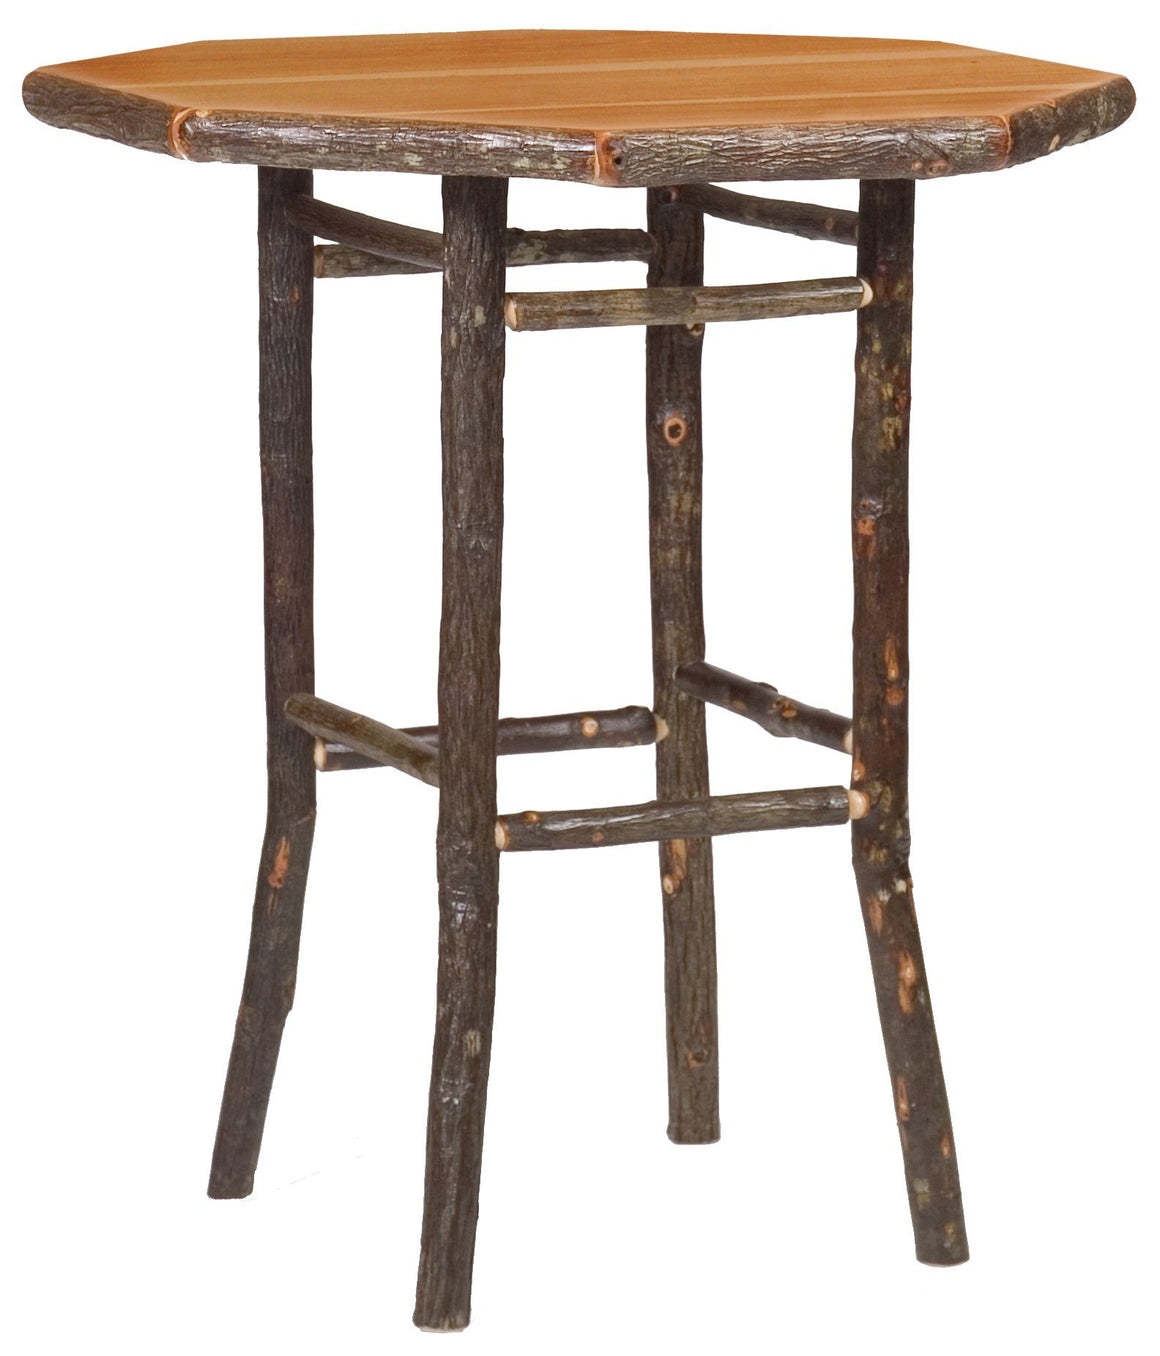 Hickory Log Round Pub Table - Standard Finish - Rustic Deco Incorporated